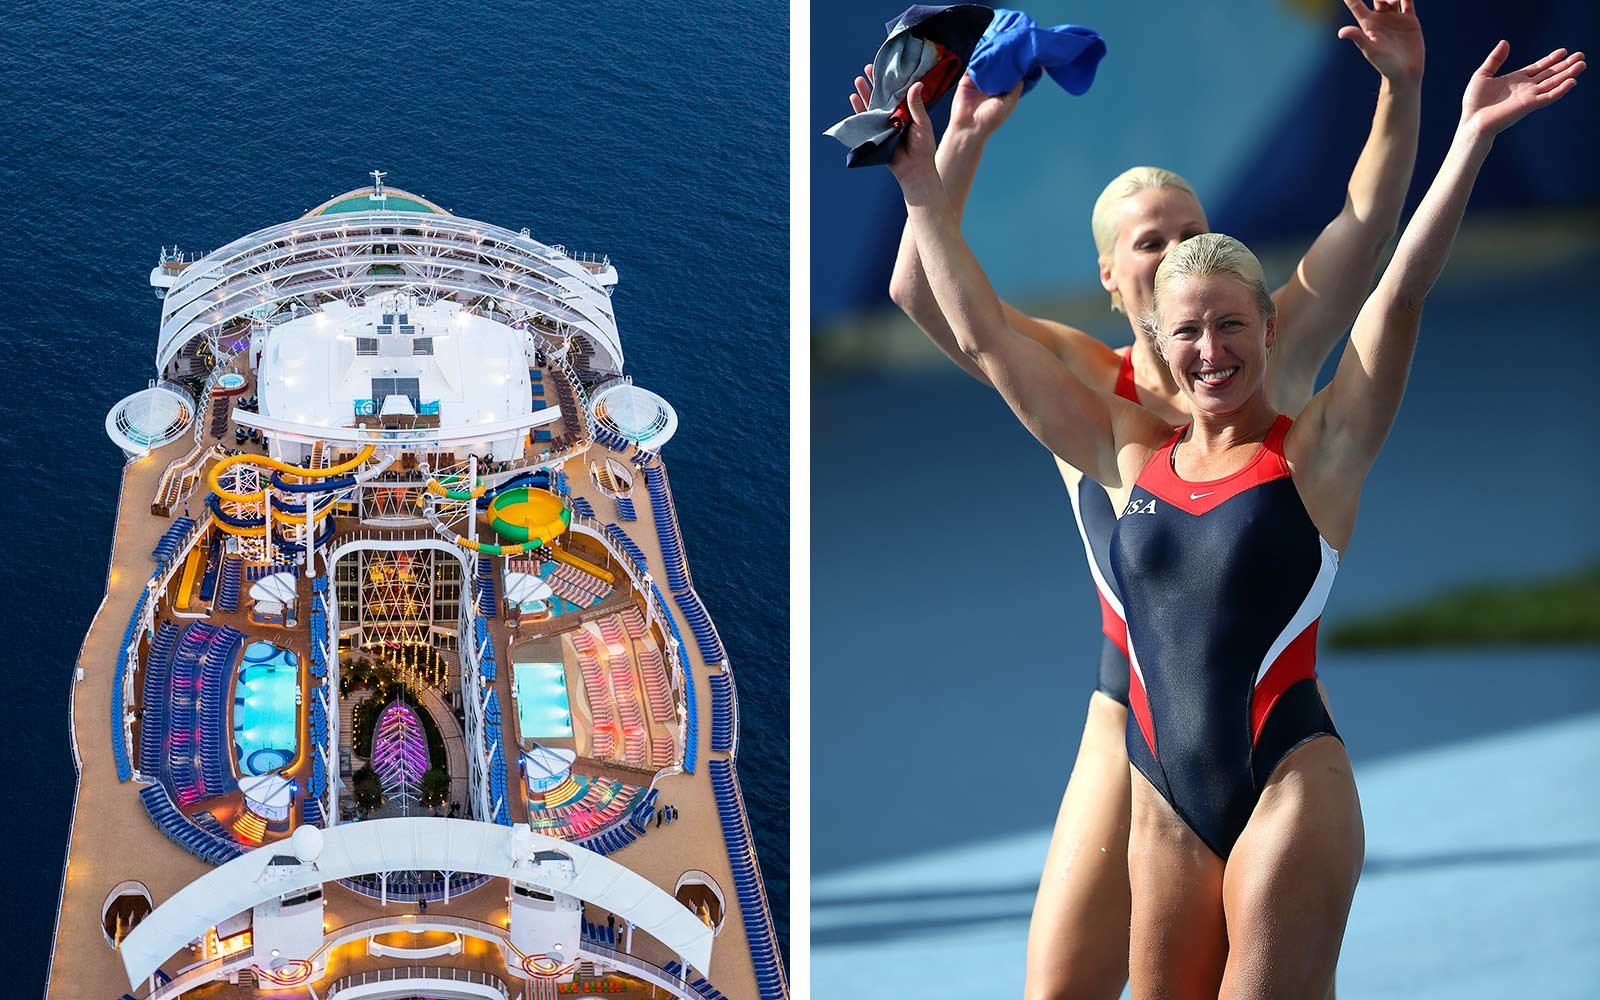 Diving on cruise ship